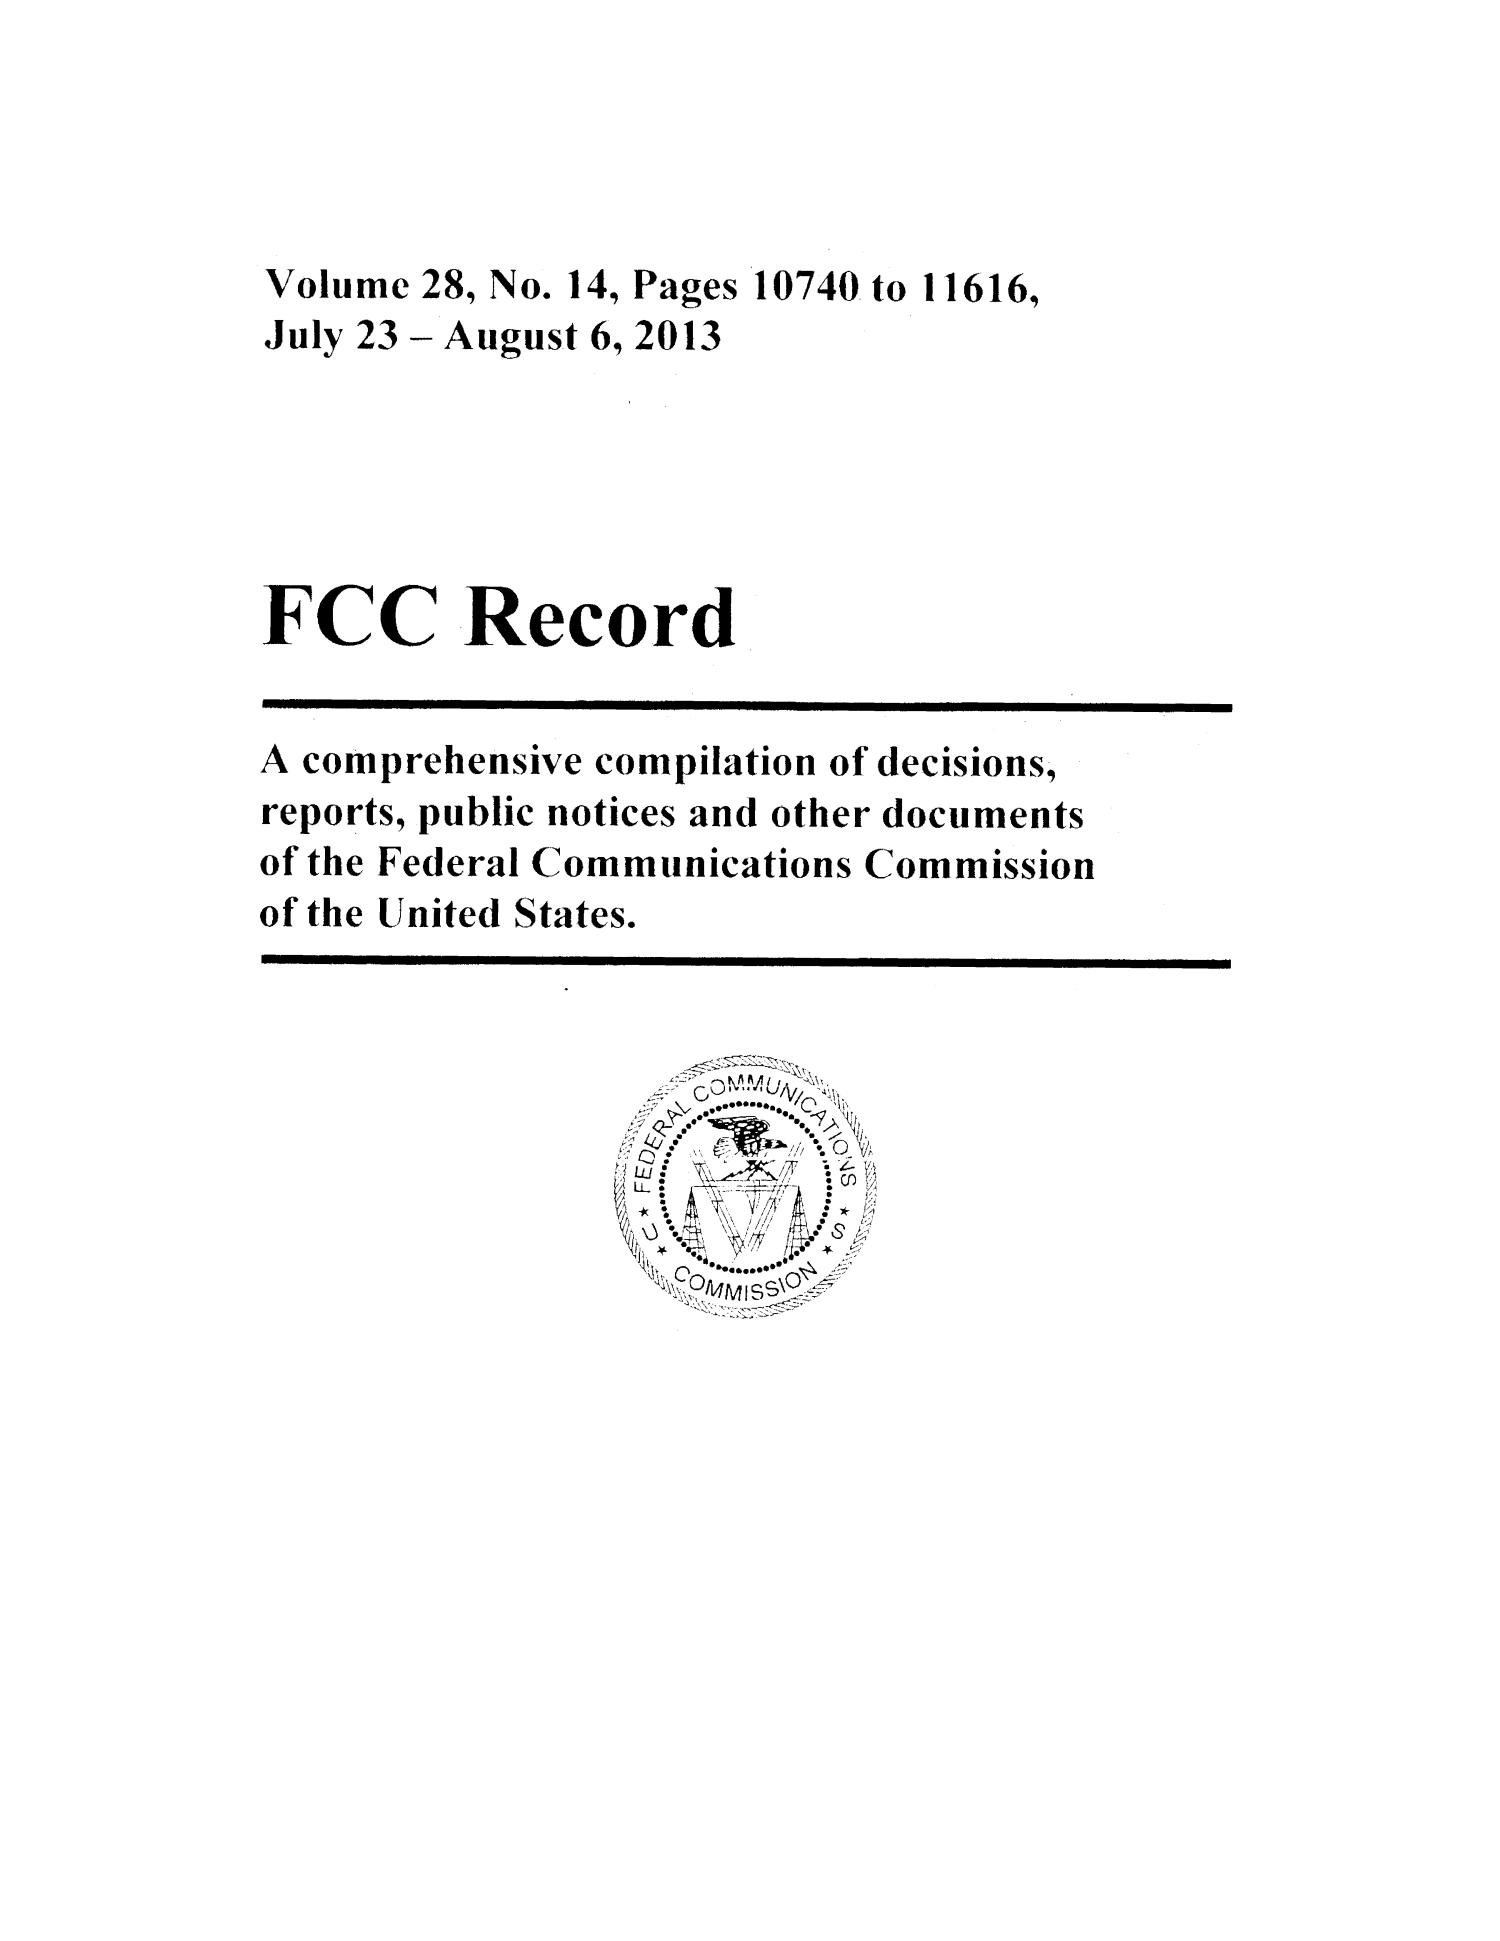 FCC Record, Volume 28, No. 14, Pages 10740 to 11616, July 23 - August 6, 2013                                                                                                      Title Page